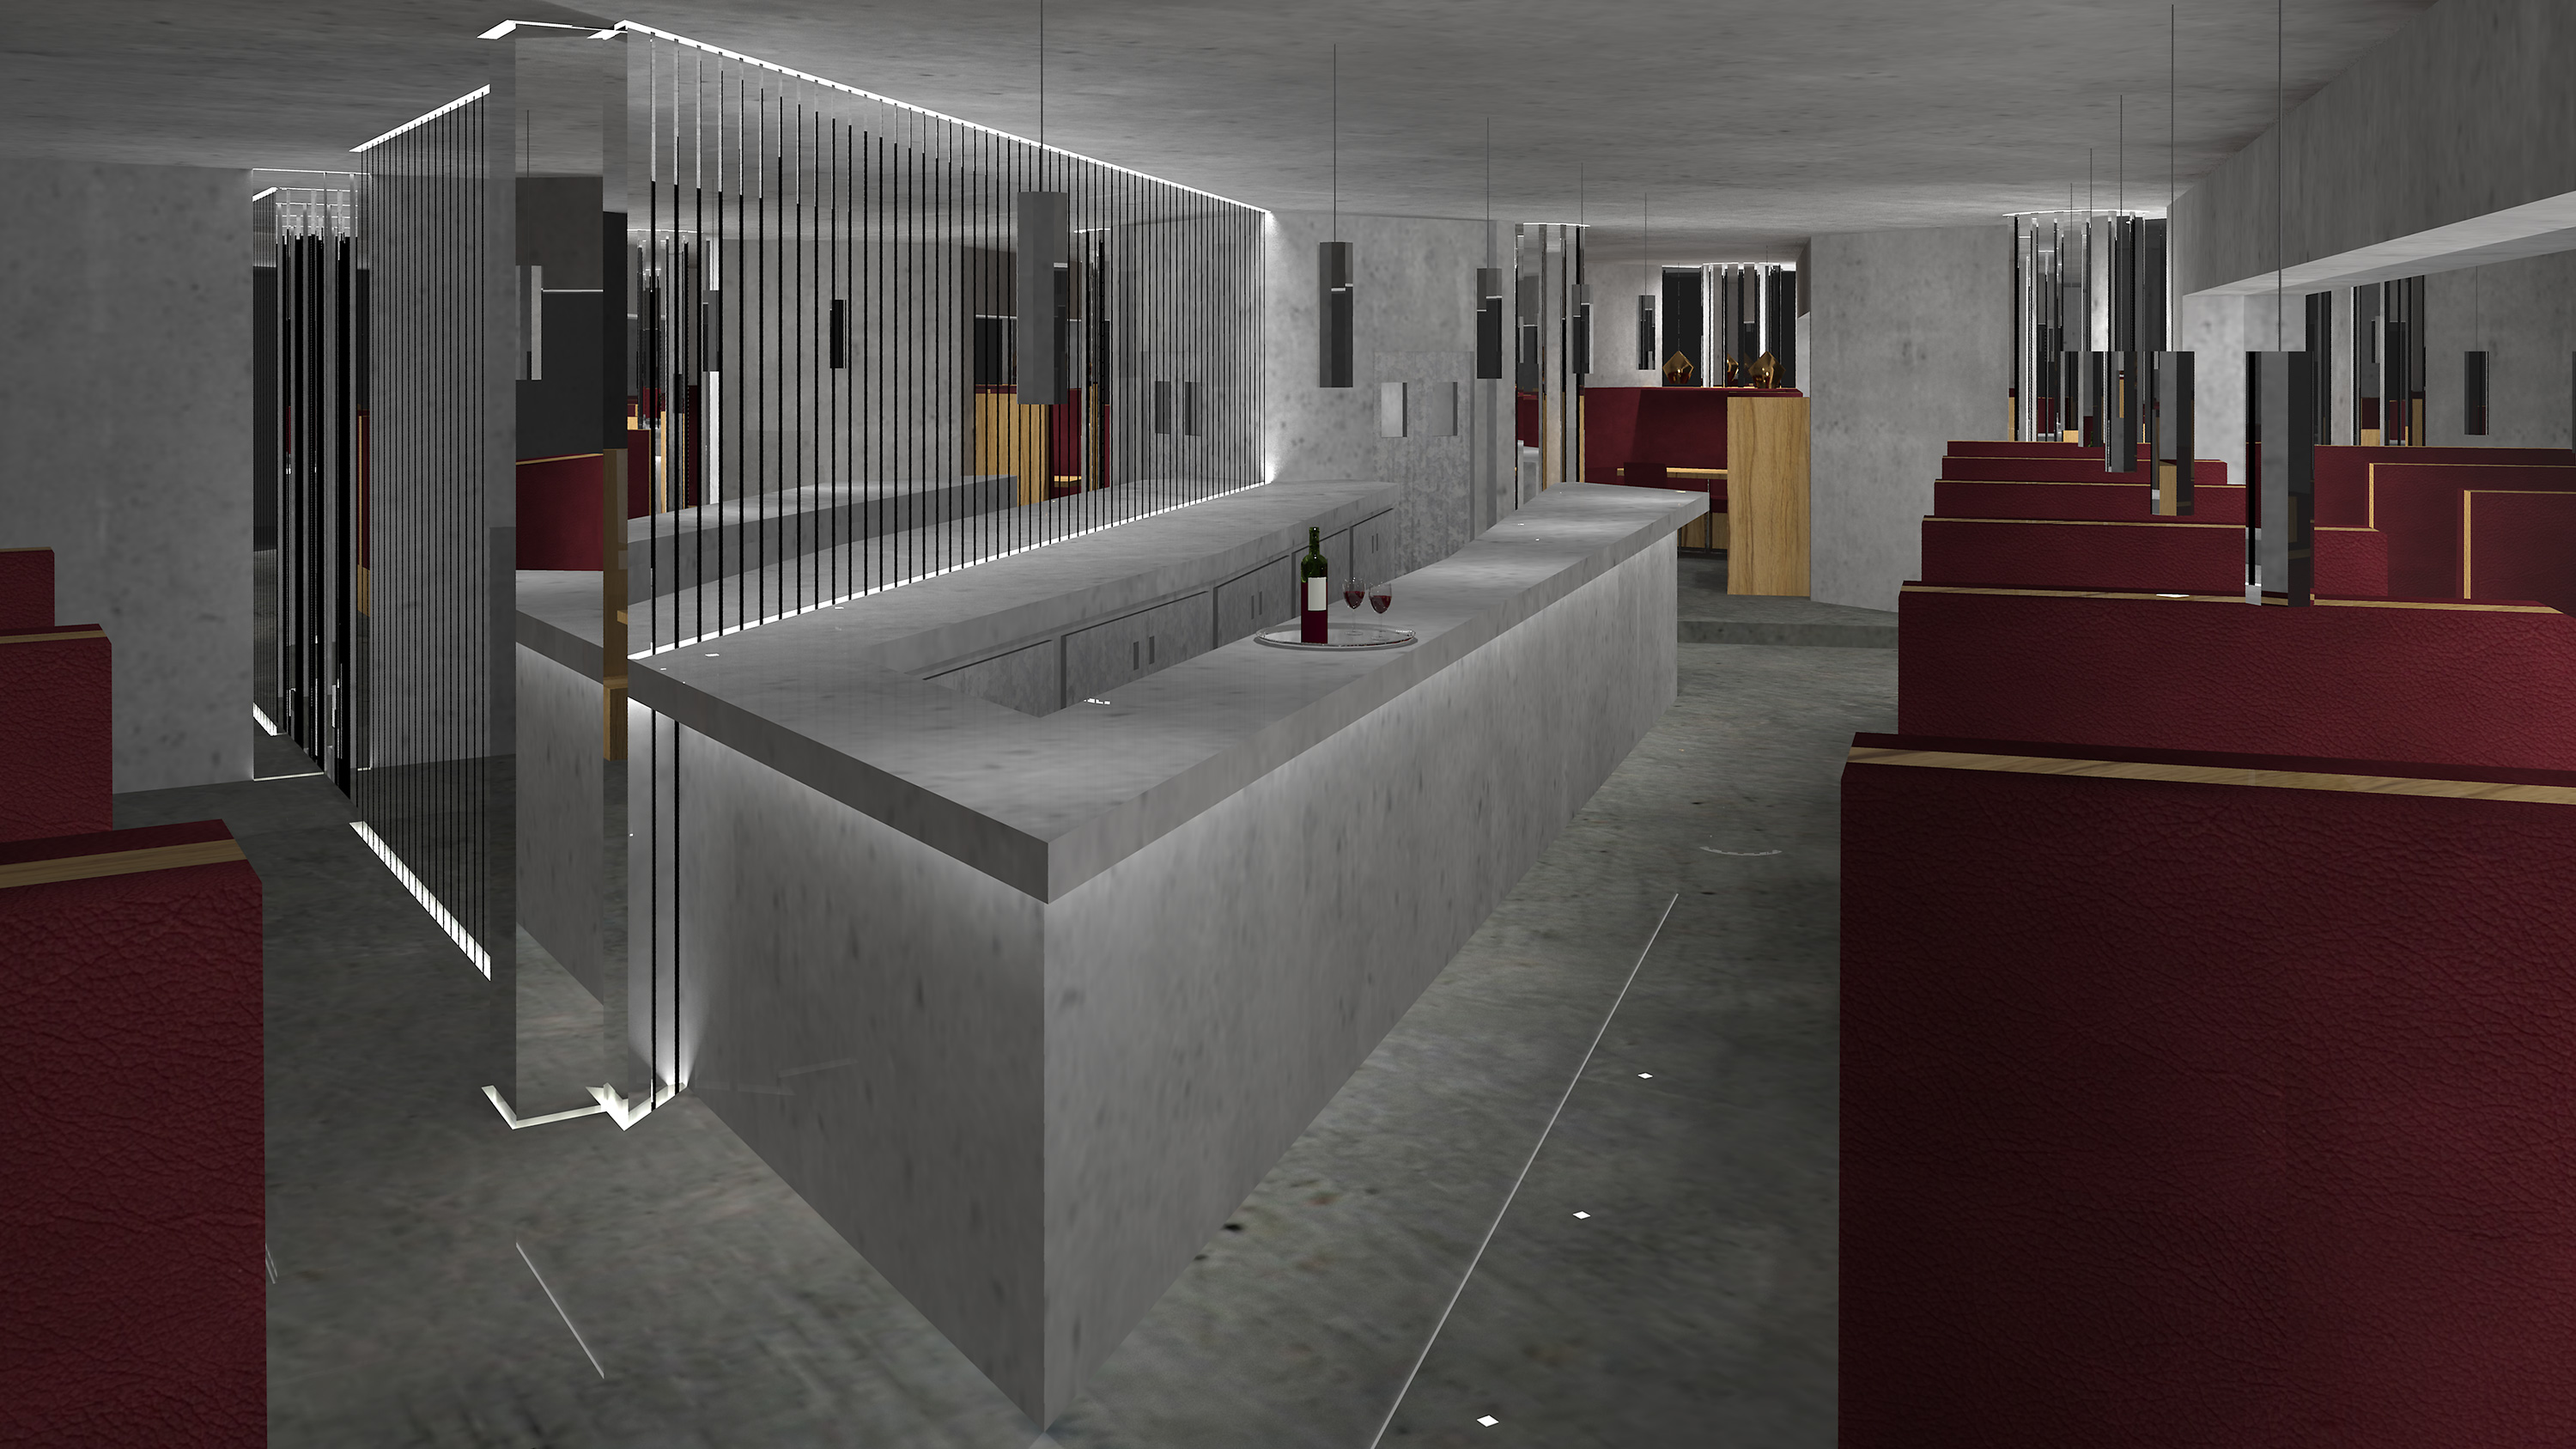 Art deco cocktail bar with concrete walls, chrome bars, pendants and oxblood leather seats